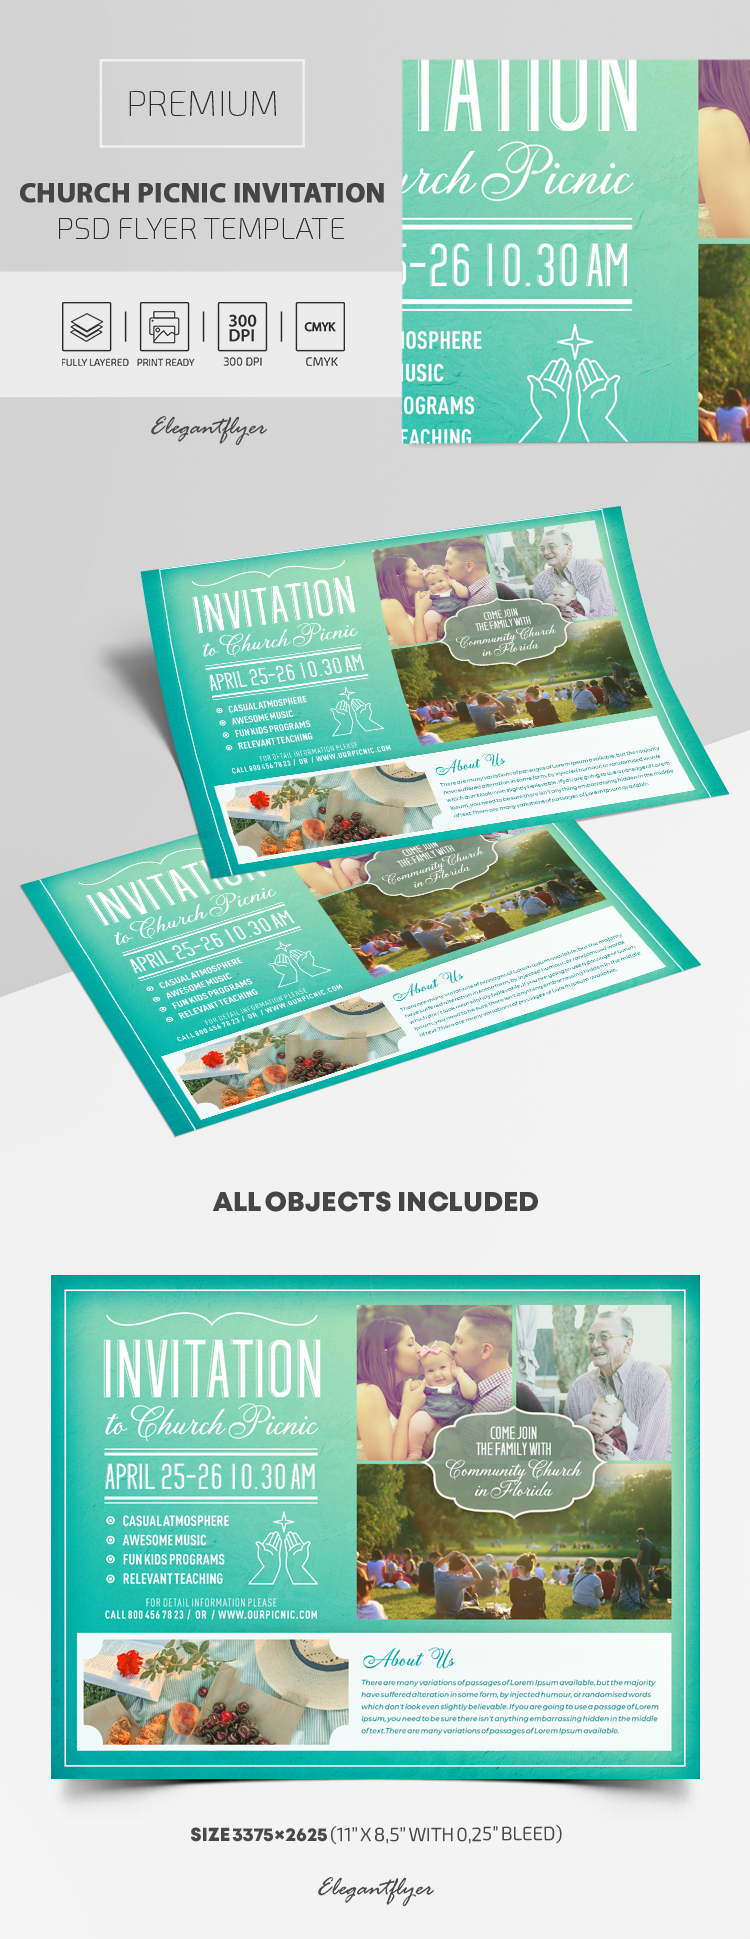 Church Picnic Invitation – Premium PSD Template